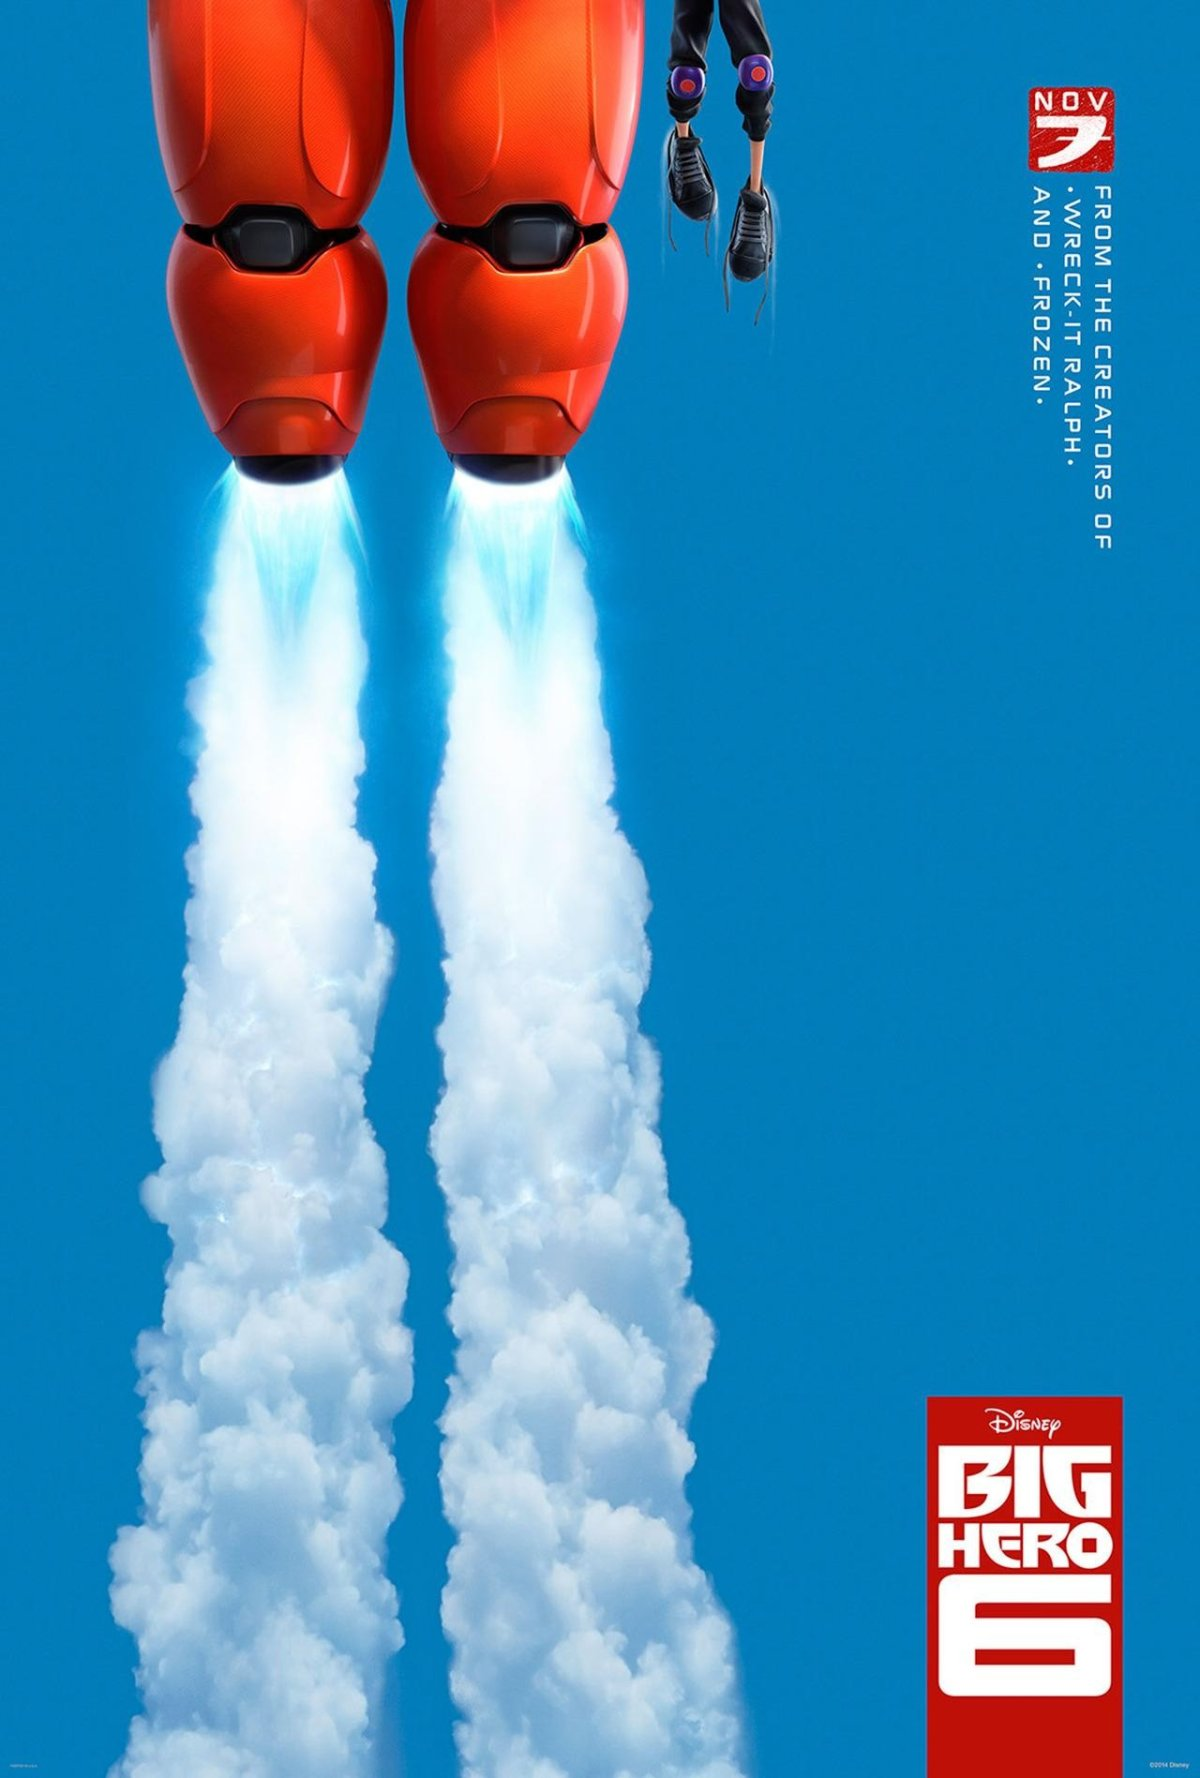 Big hero 6 credits scene they are not only books - Big Hero 6 Film Marvel Animated Universe Wiki Fandom Powered By Wikia